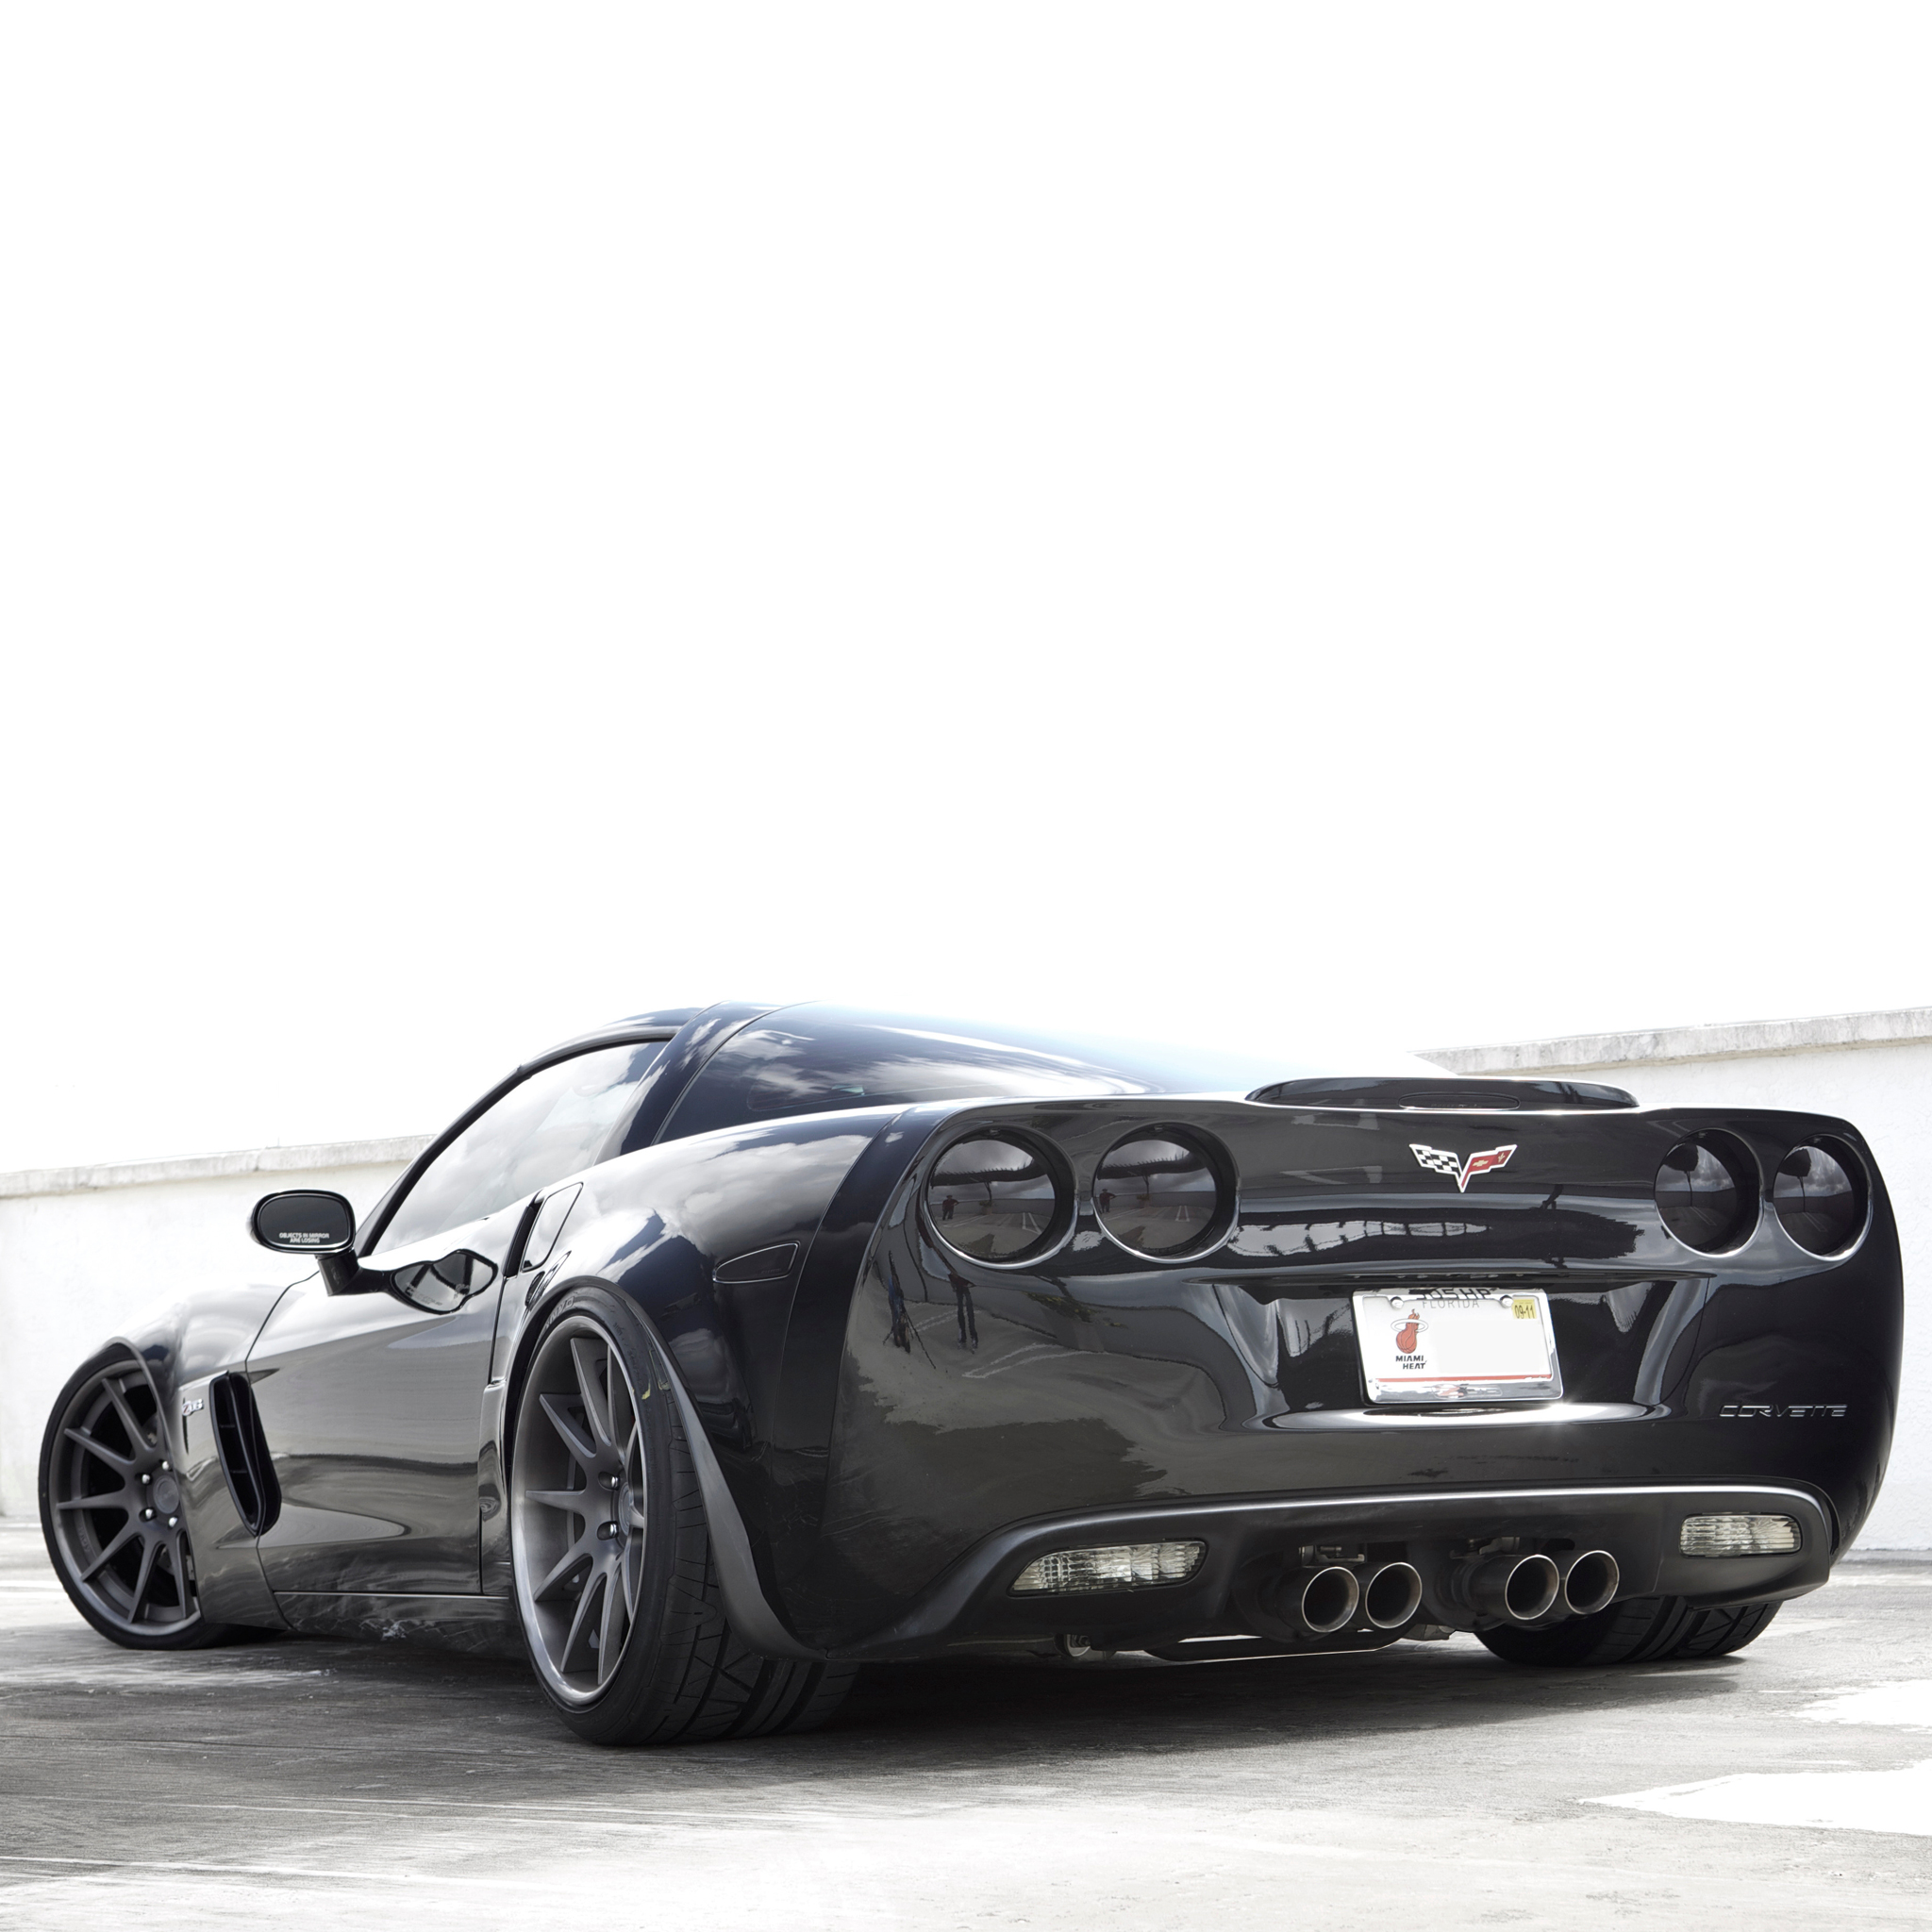 Corvette-3Wallpapeers-iPad-Retina